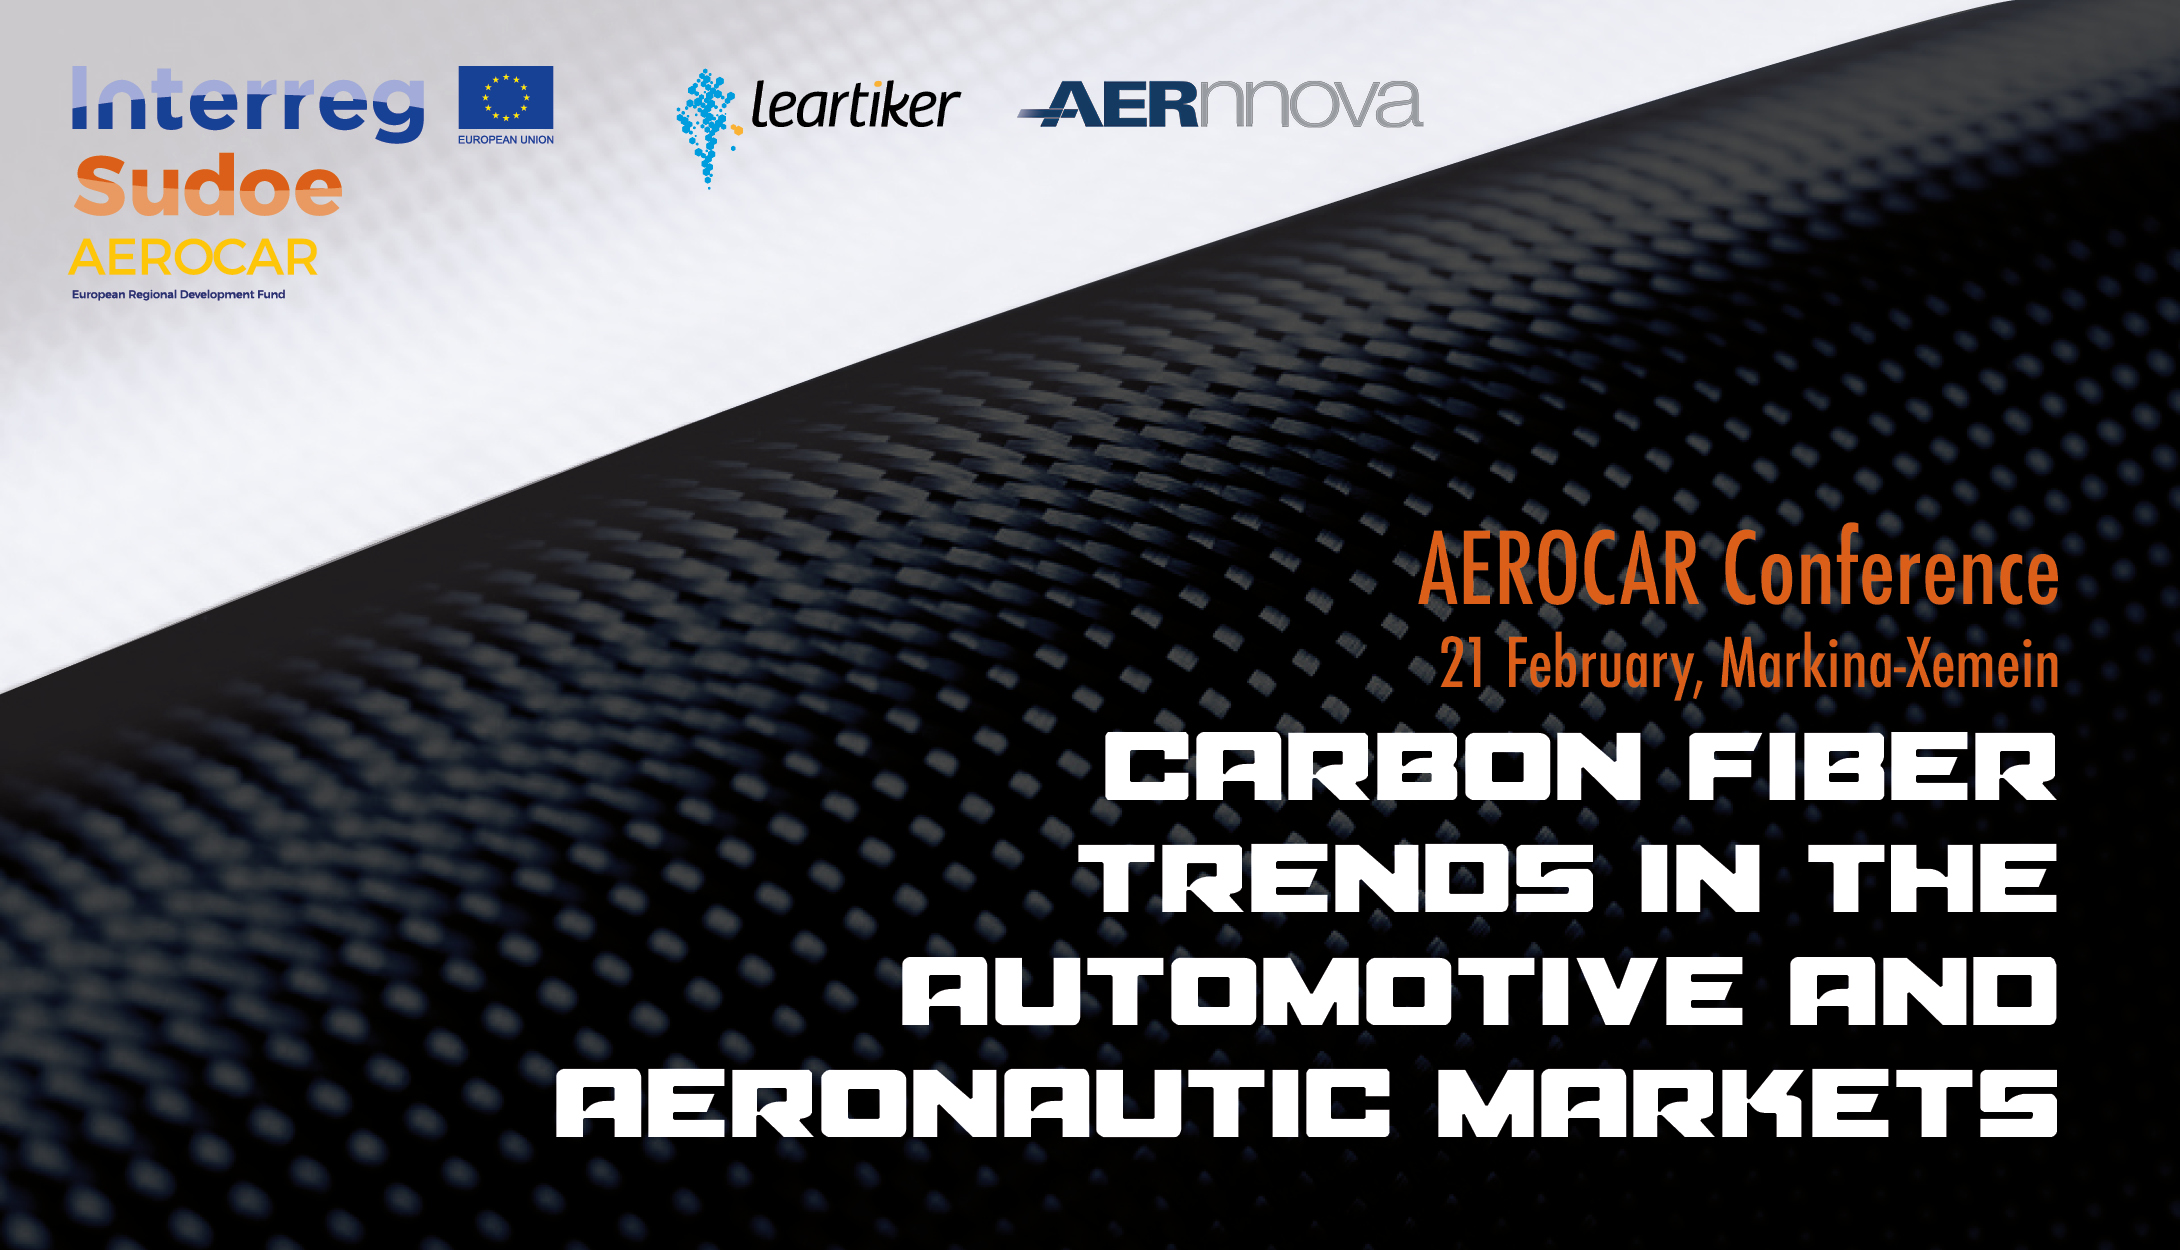 The carbon fibre will be the star of the conference that will take place next February 21